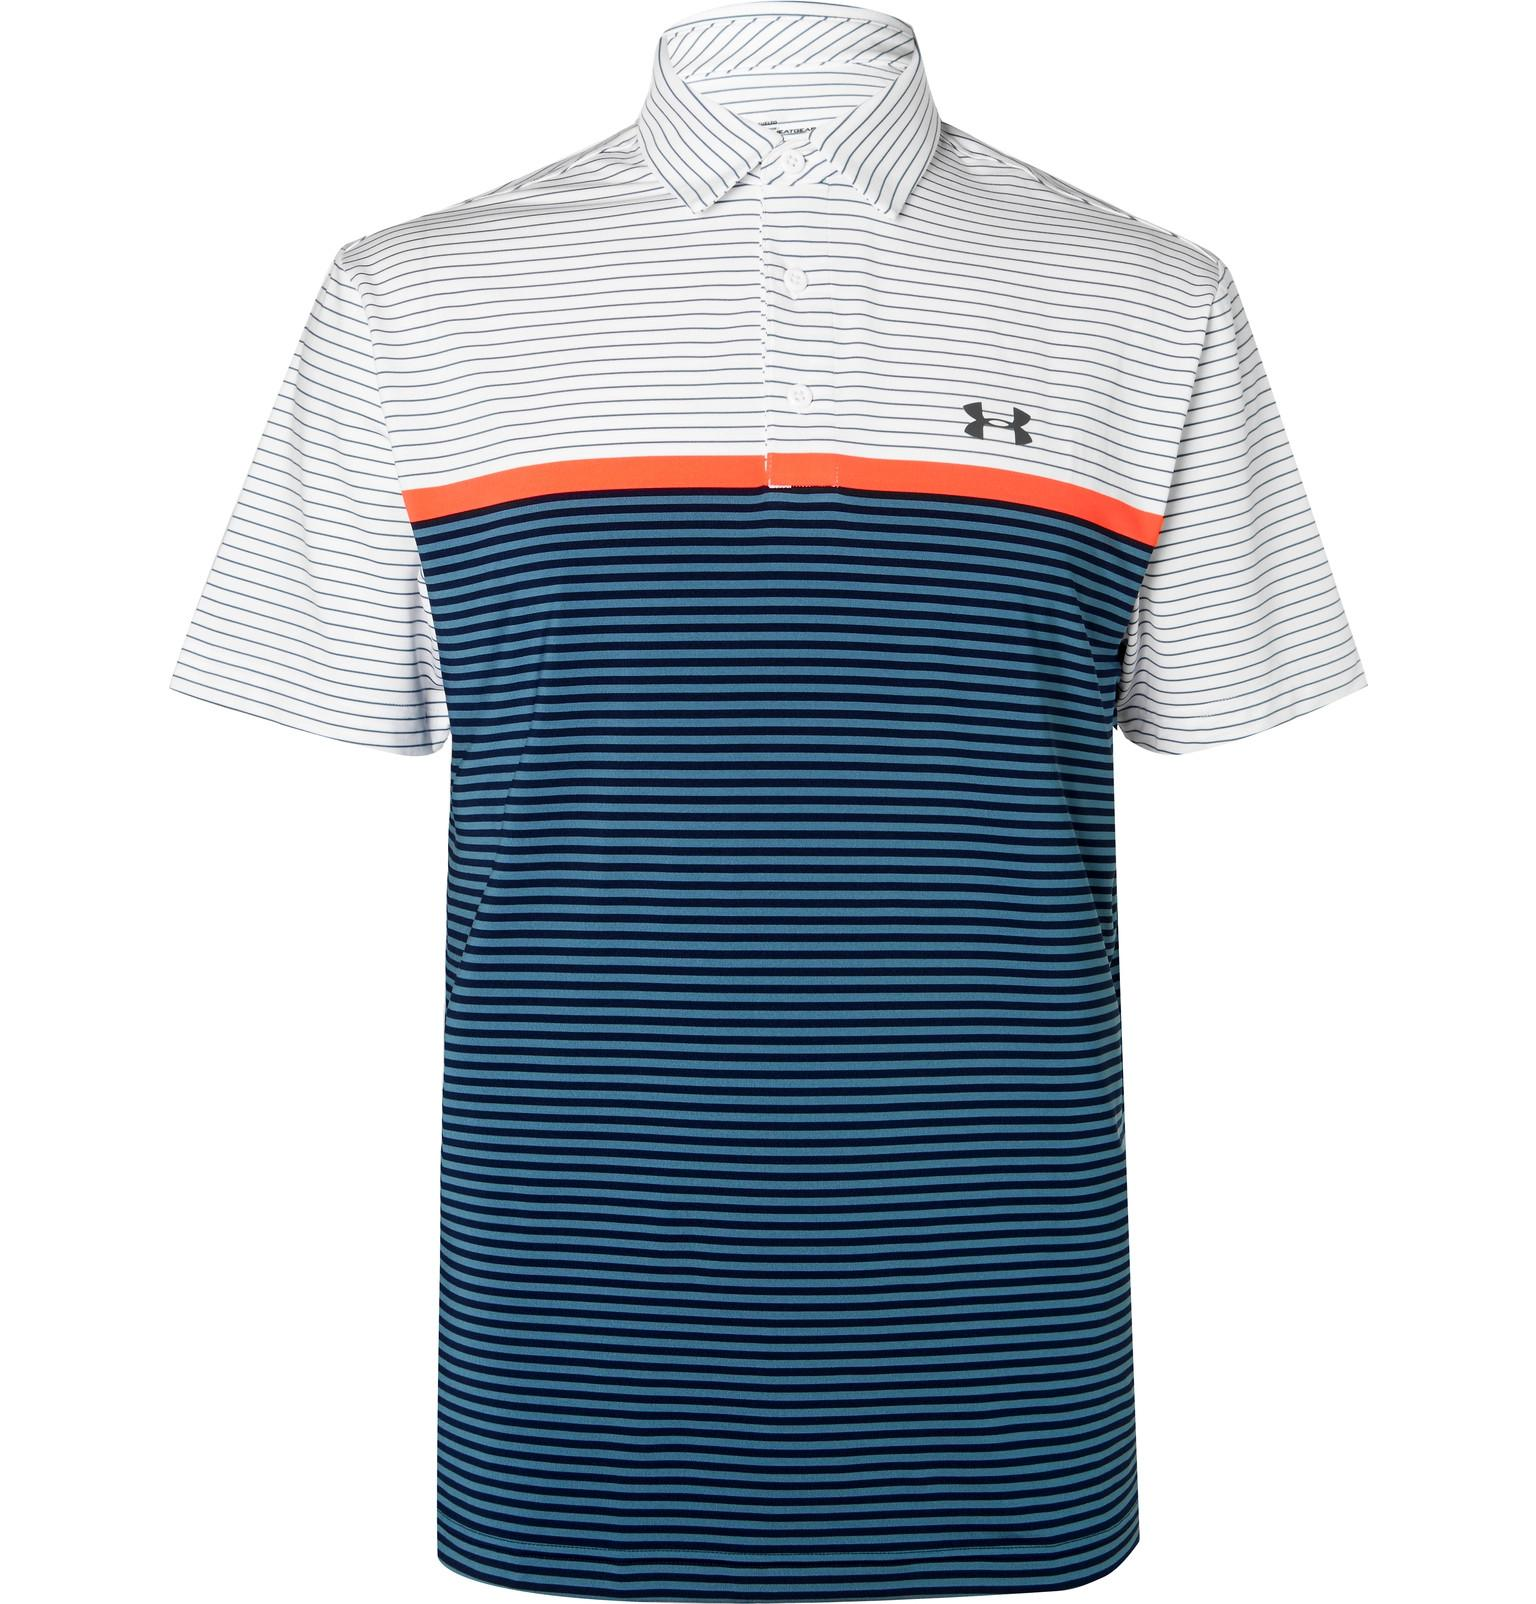 e96d2e857544be Lyst - Under Armour Playoff Striped Heatgear Golf Polo Shirt in ...